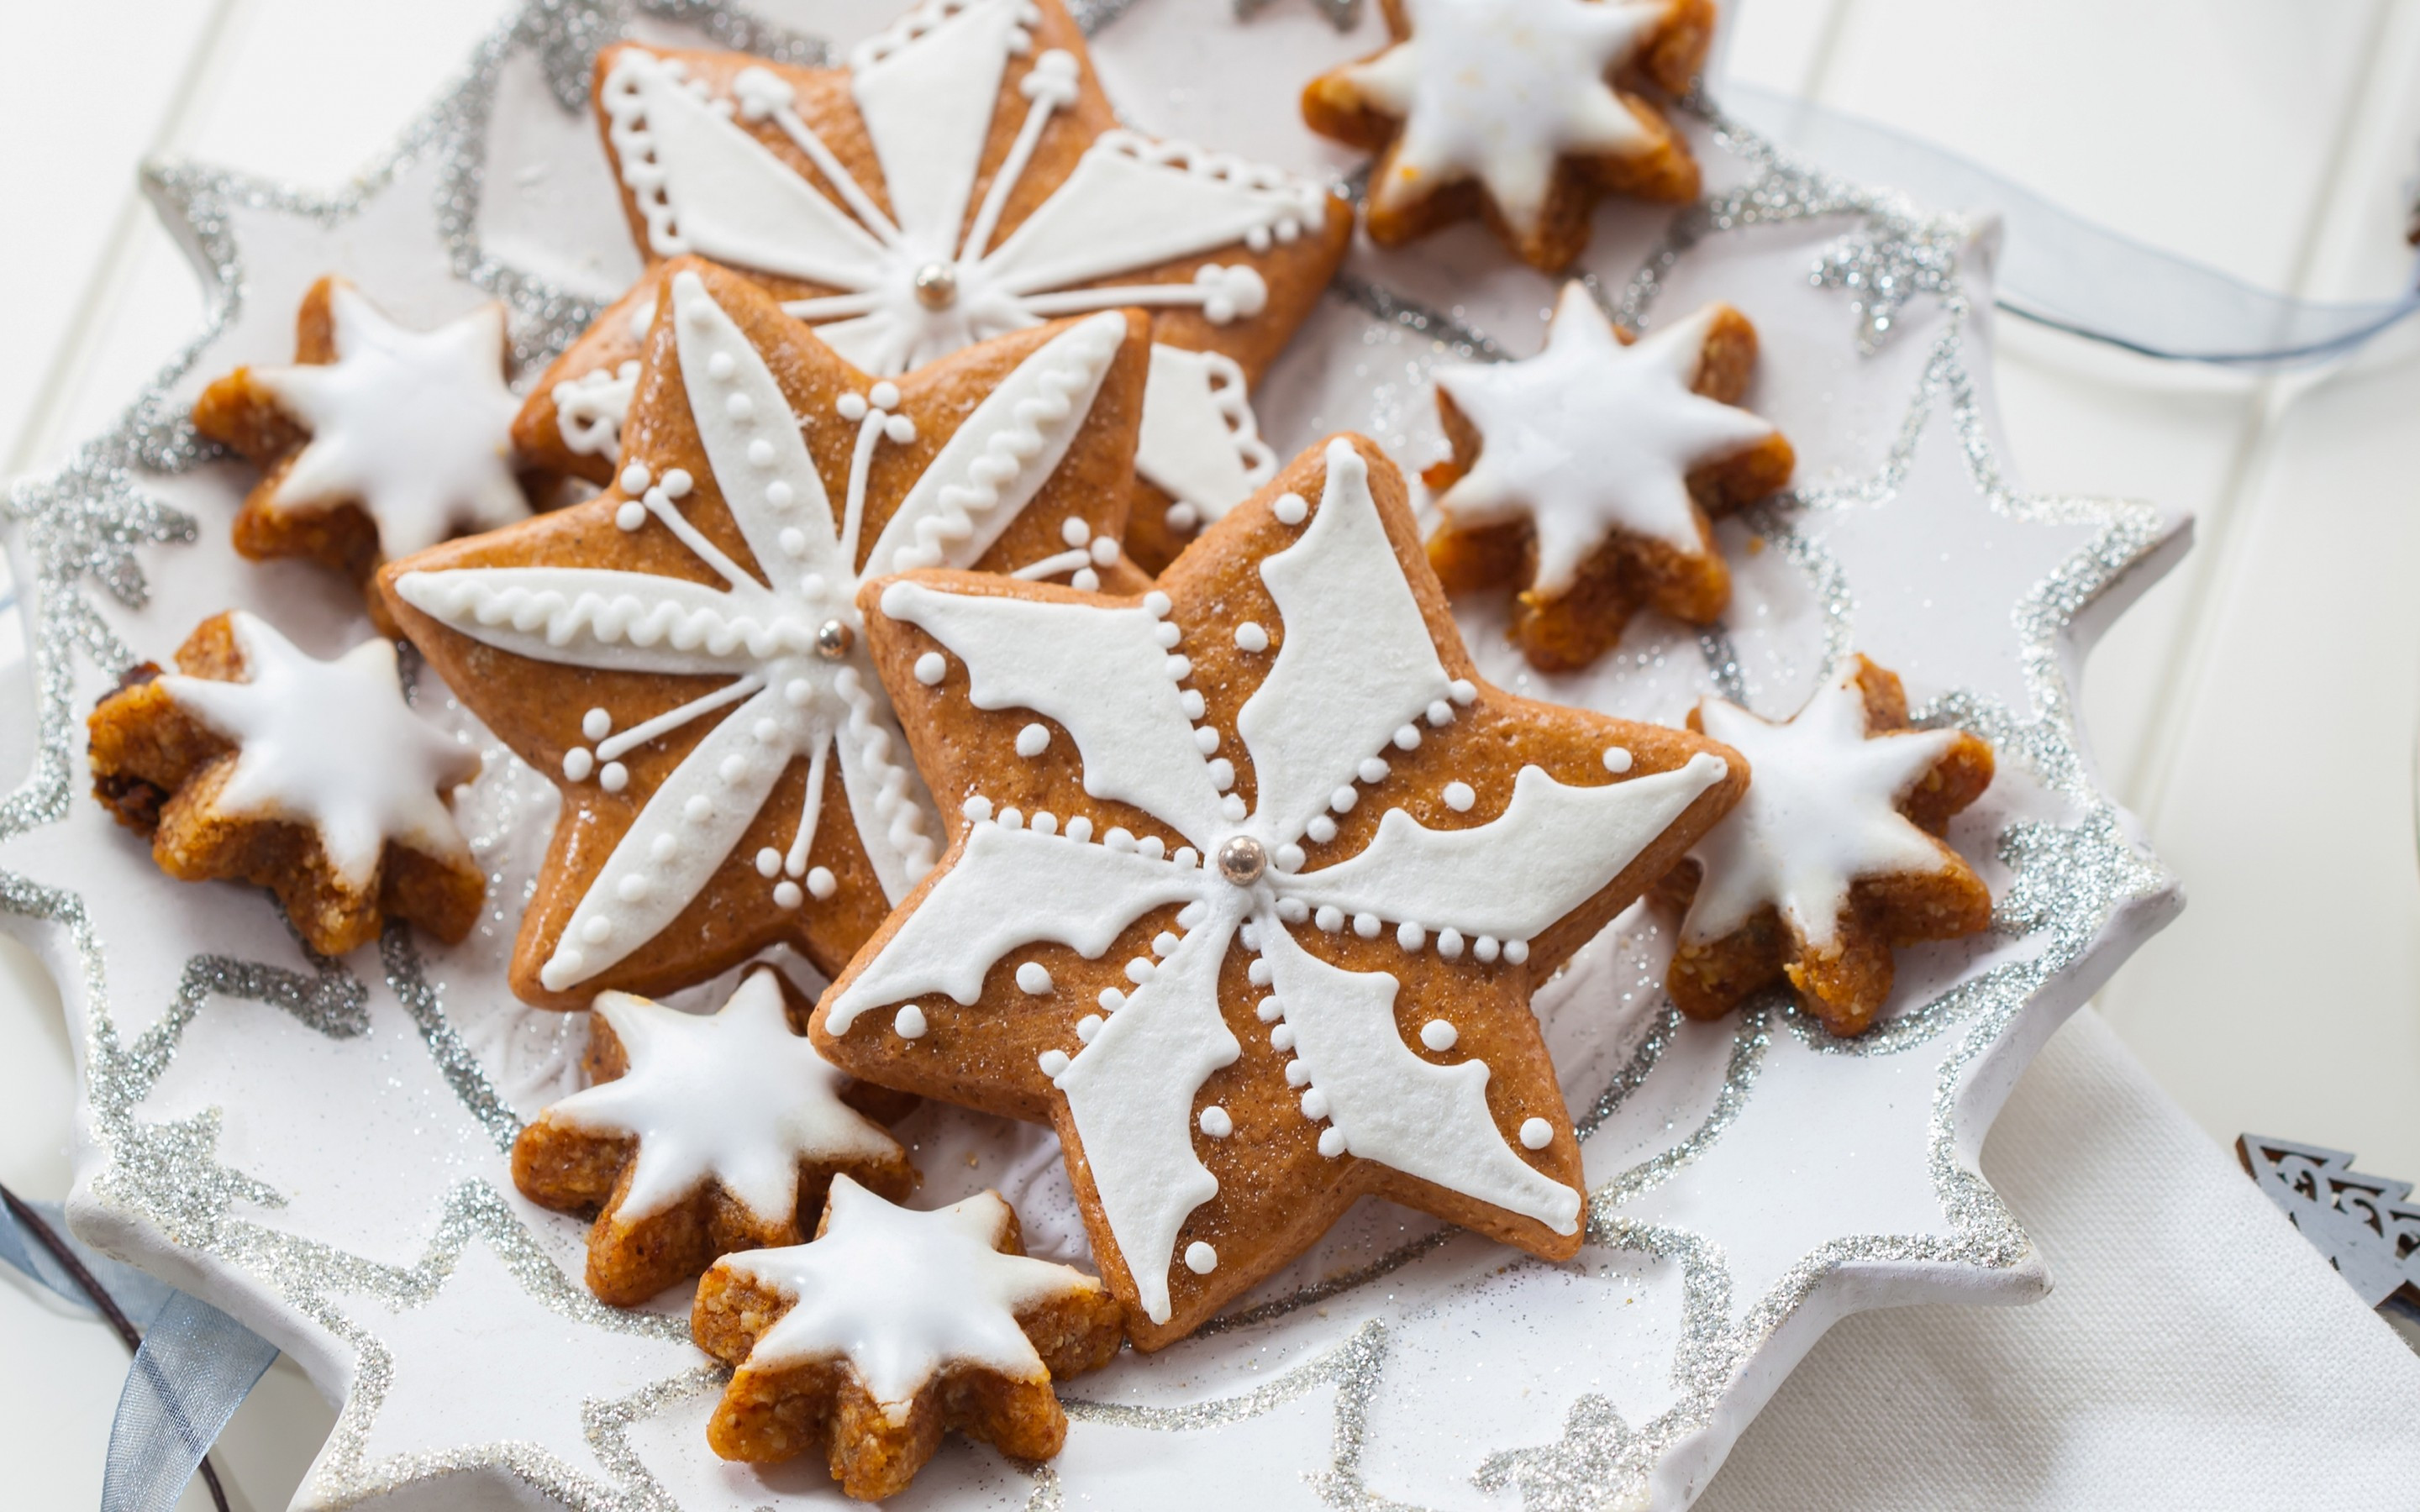 Christmas Cookies Wallpaper  Christmas Sugar Cookies Wallpaper High Definition High